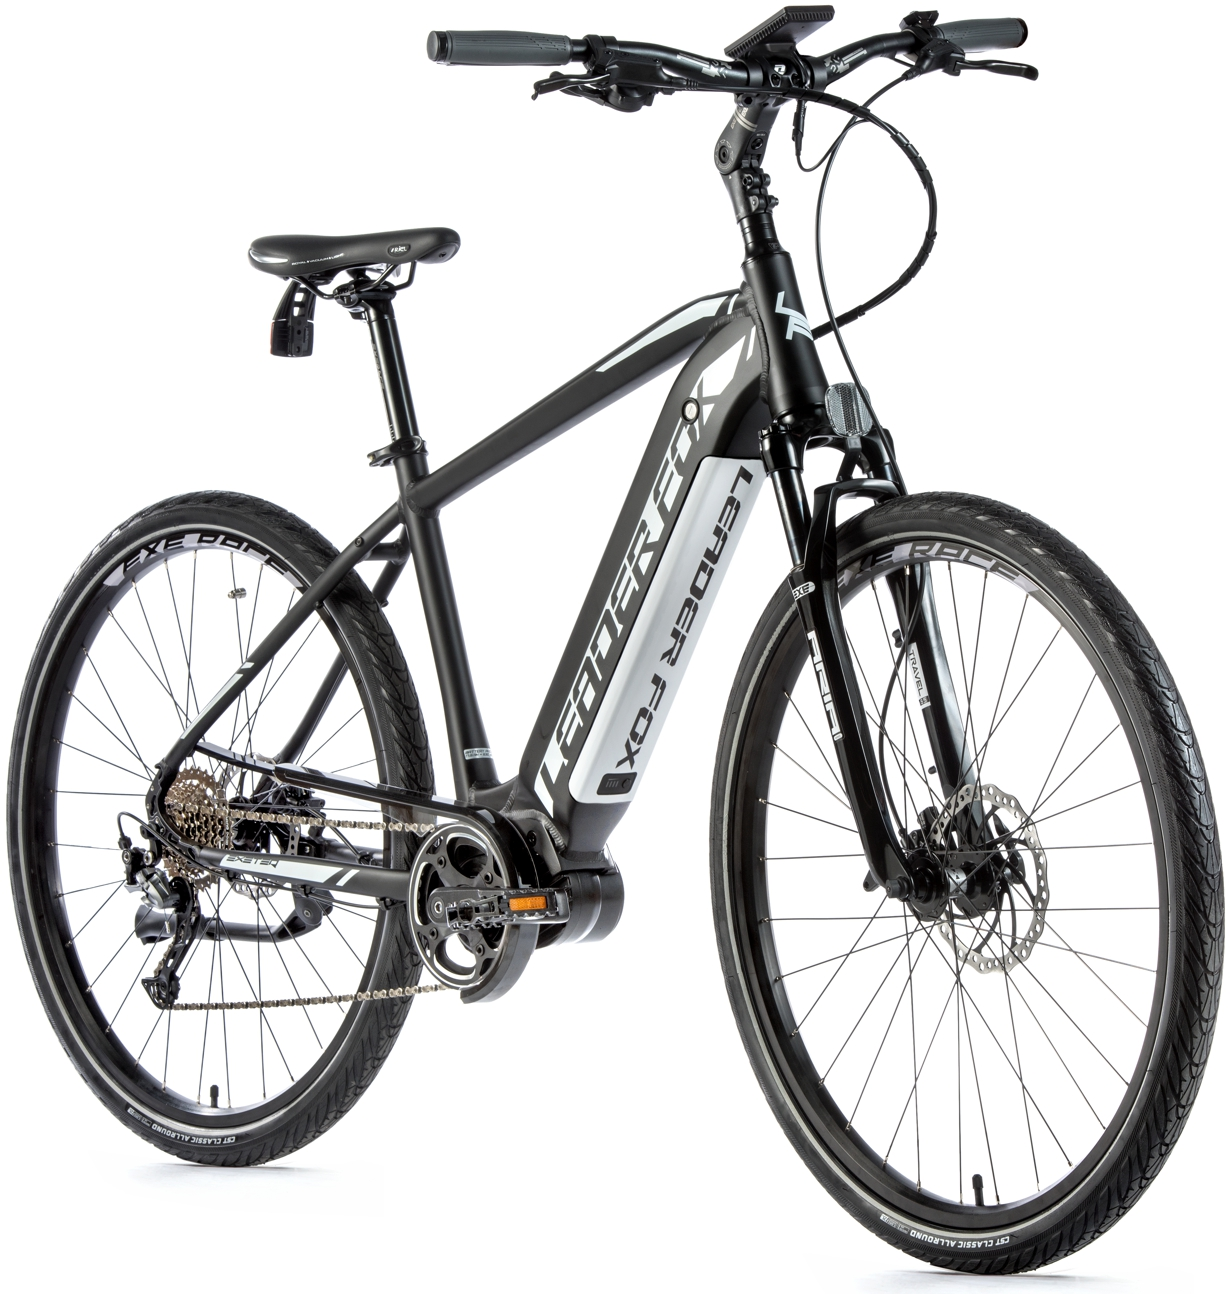 Bicicleta electrica Cross Leader Fox Exeter Gent, 2020